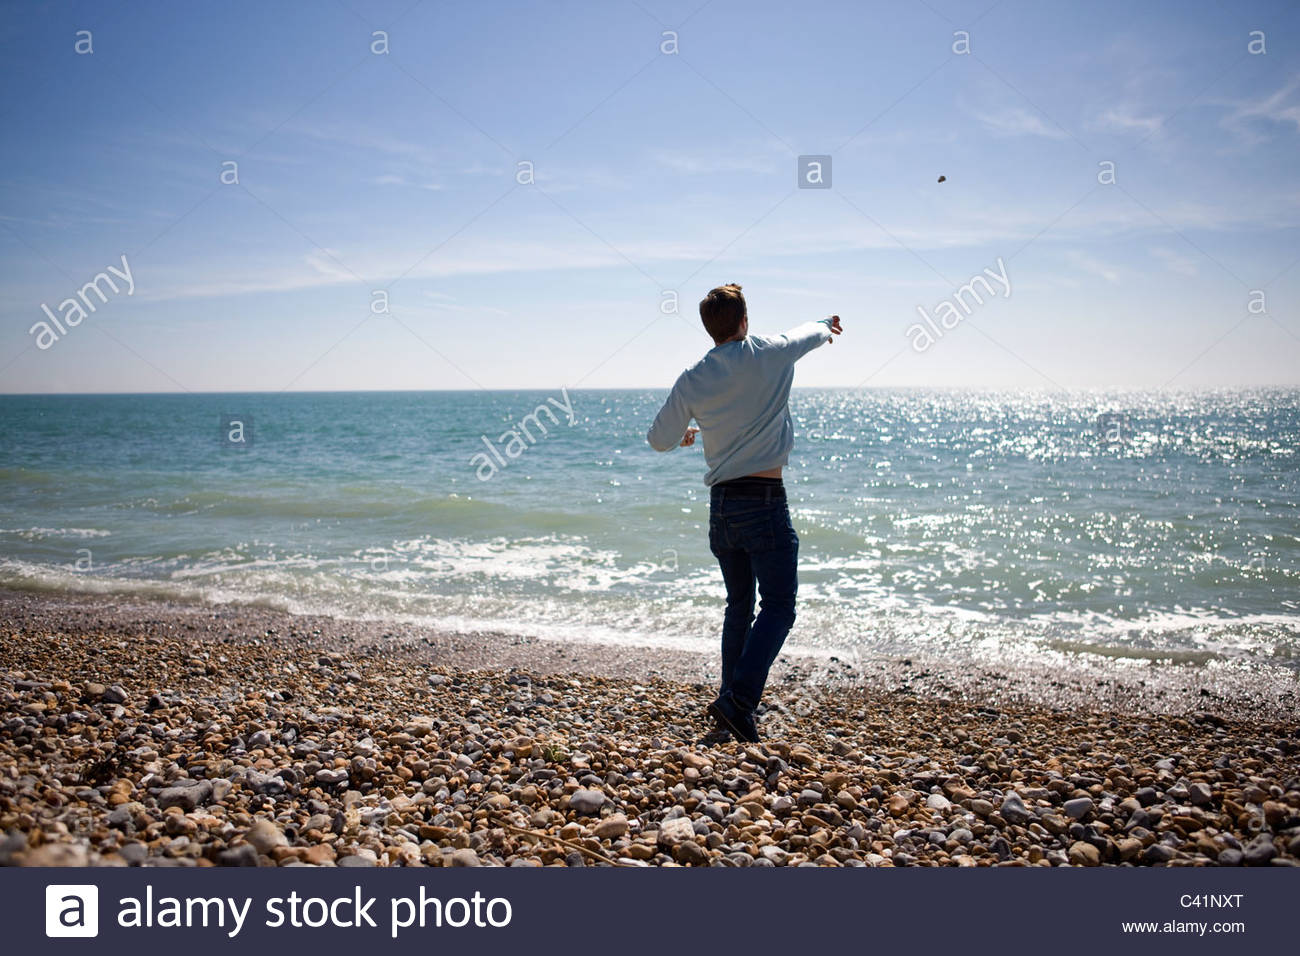 Hand Throwing Stone : A young man throwing stones in the sea stock photo